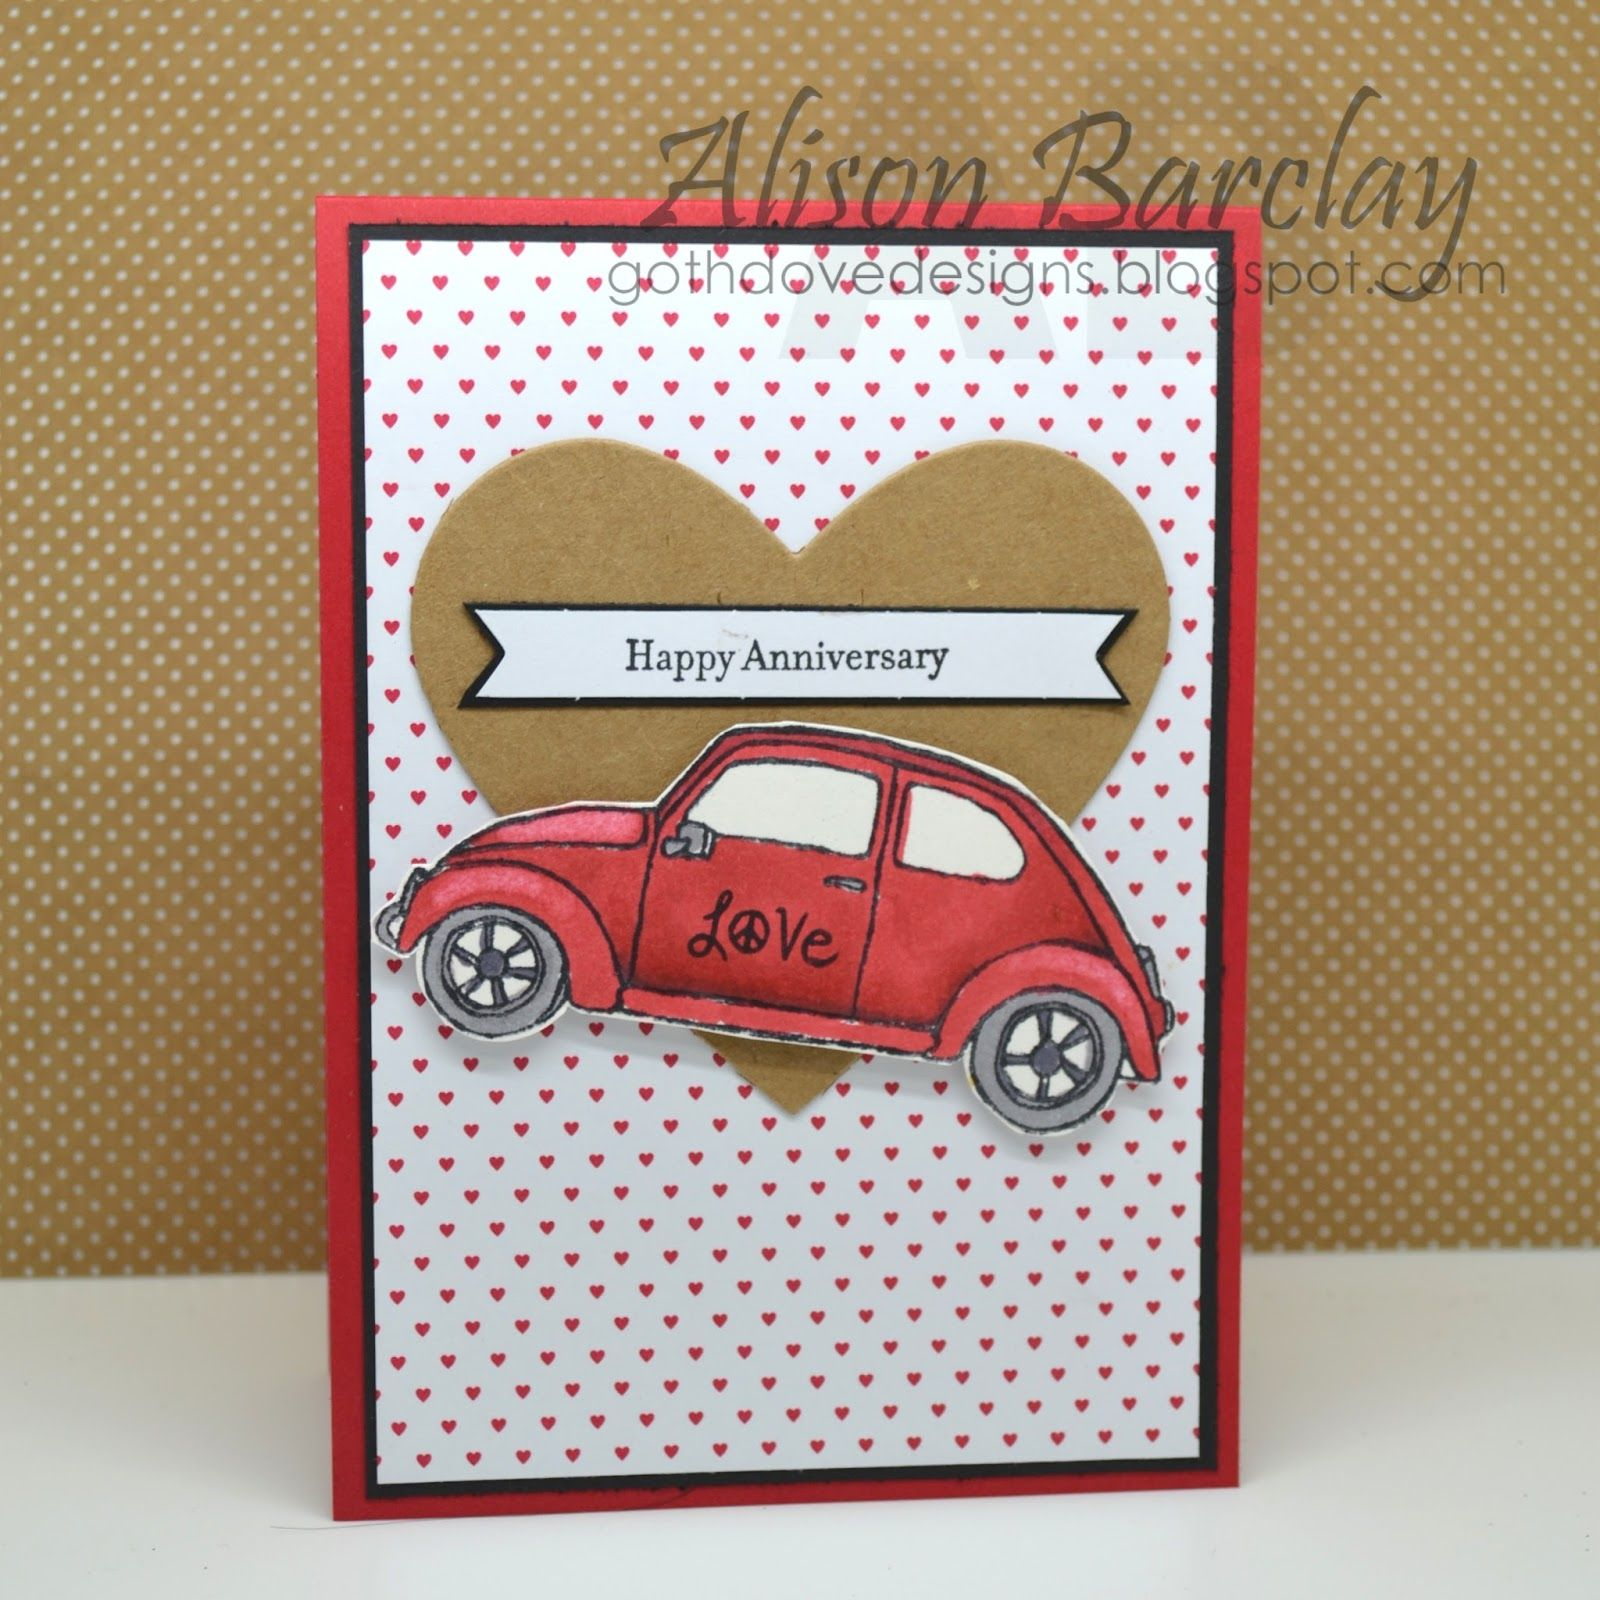 Alison Barclay Stampin Up Australia Stampin Up Australia Stampin Up Beautiful Ride Stampin Up Valentine Cards Paper Crafts Cards Valentines Cards